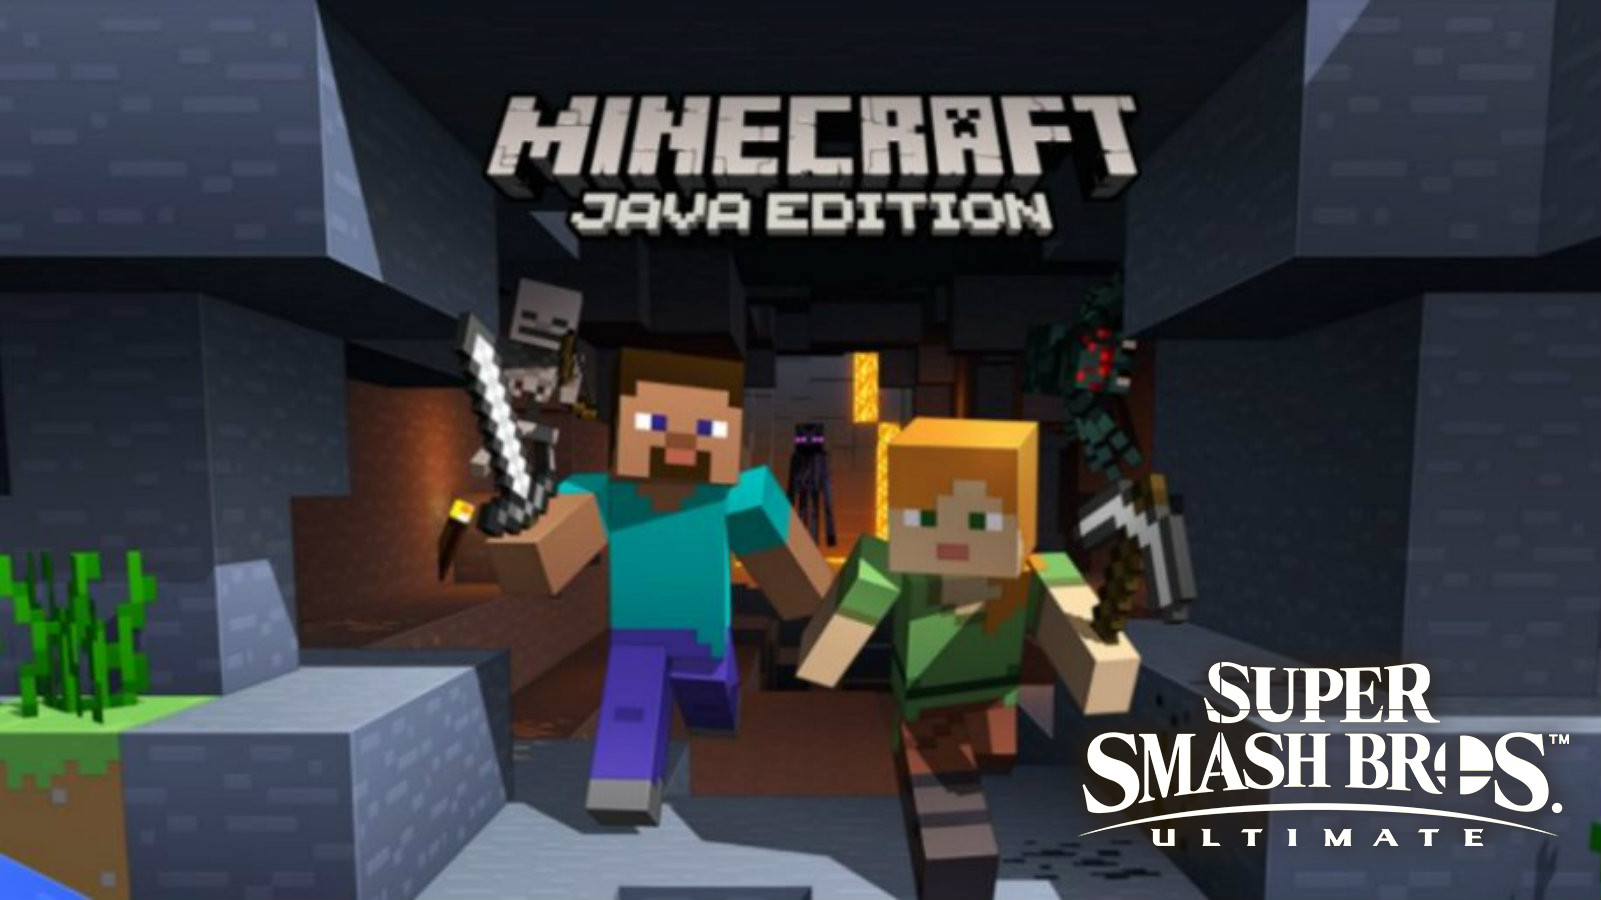 Minecraft Steve and Alex in Smash